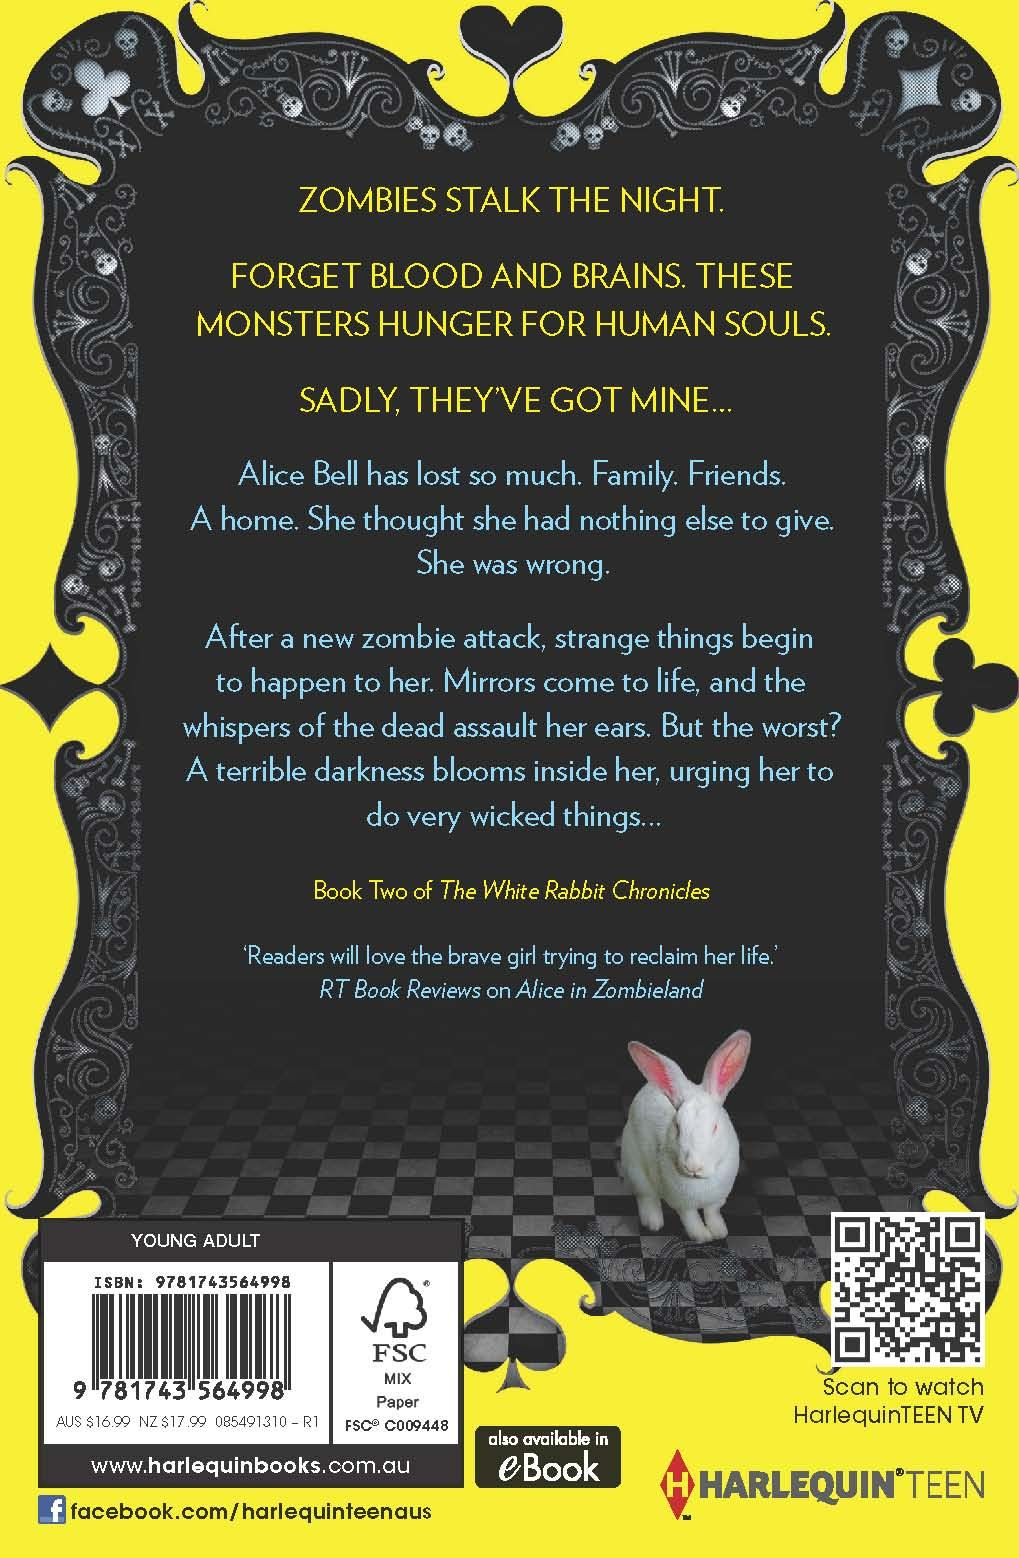 Through The Zombie Glass By Gena Showalter Book 2 In The White Rabbit  Chronicles